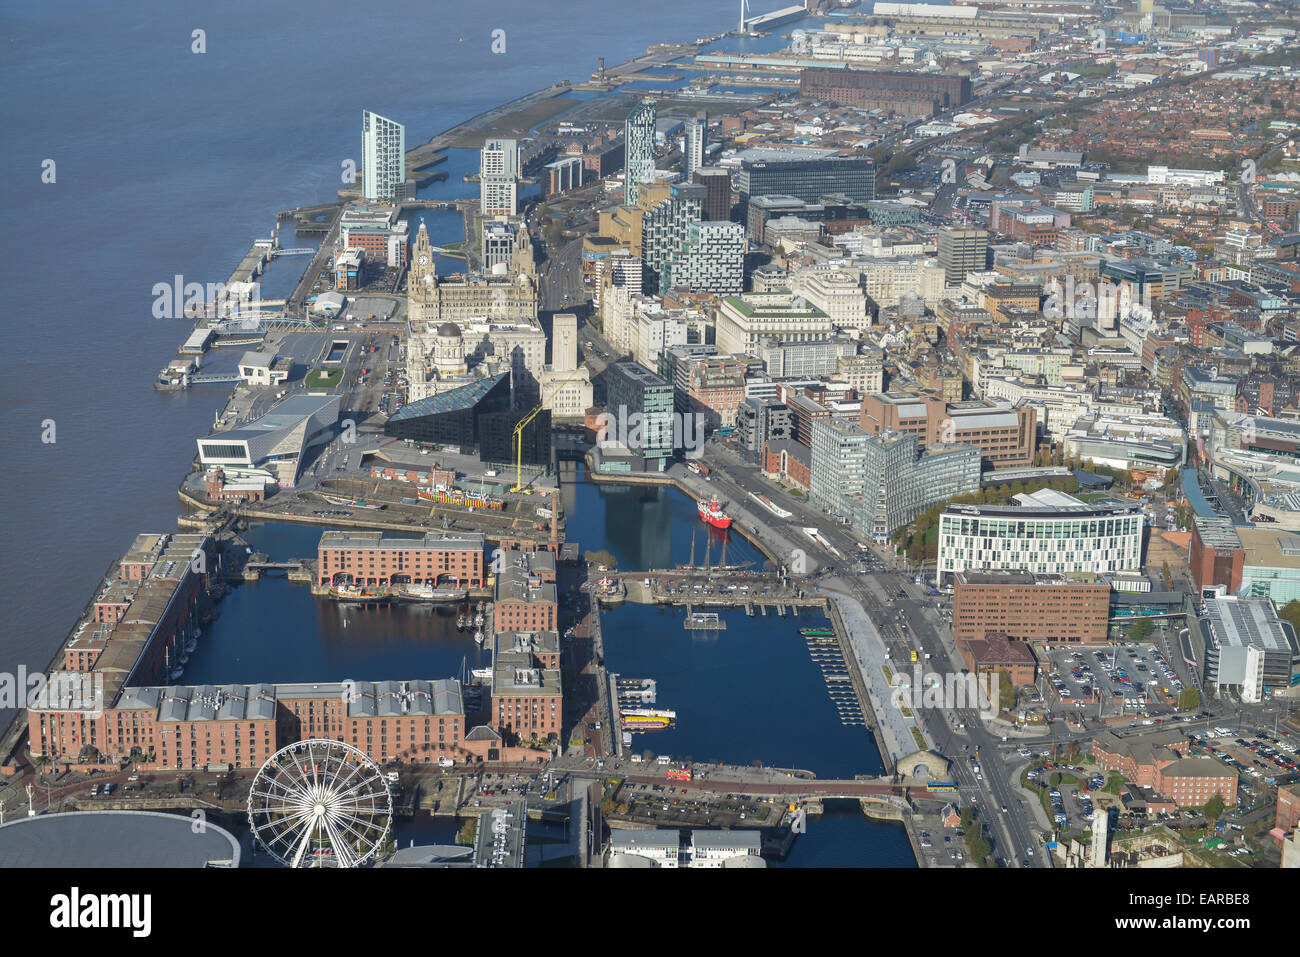 An aerial view of Liverpool City Centre and the River Mersey Stock